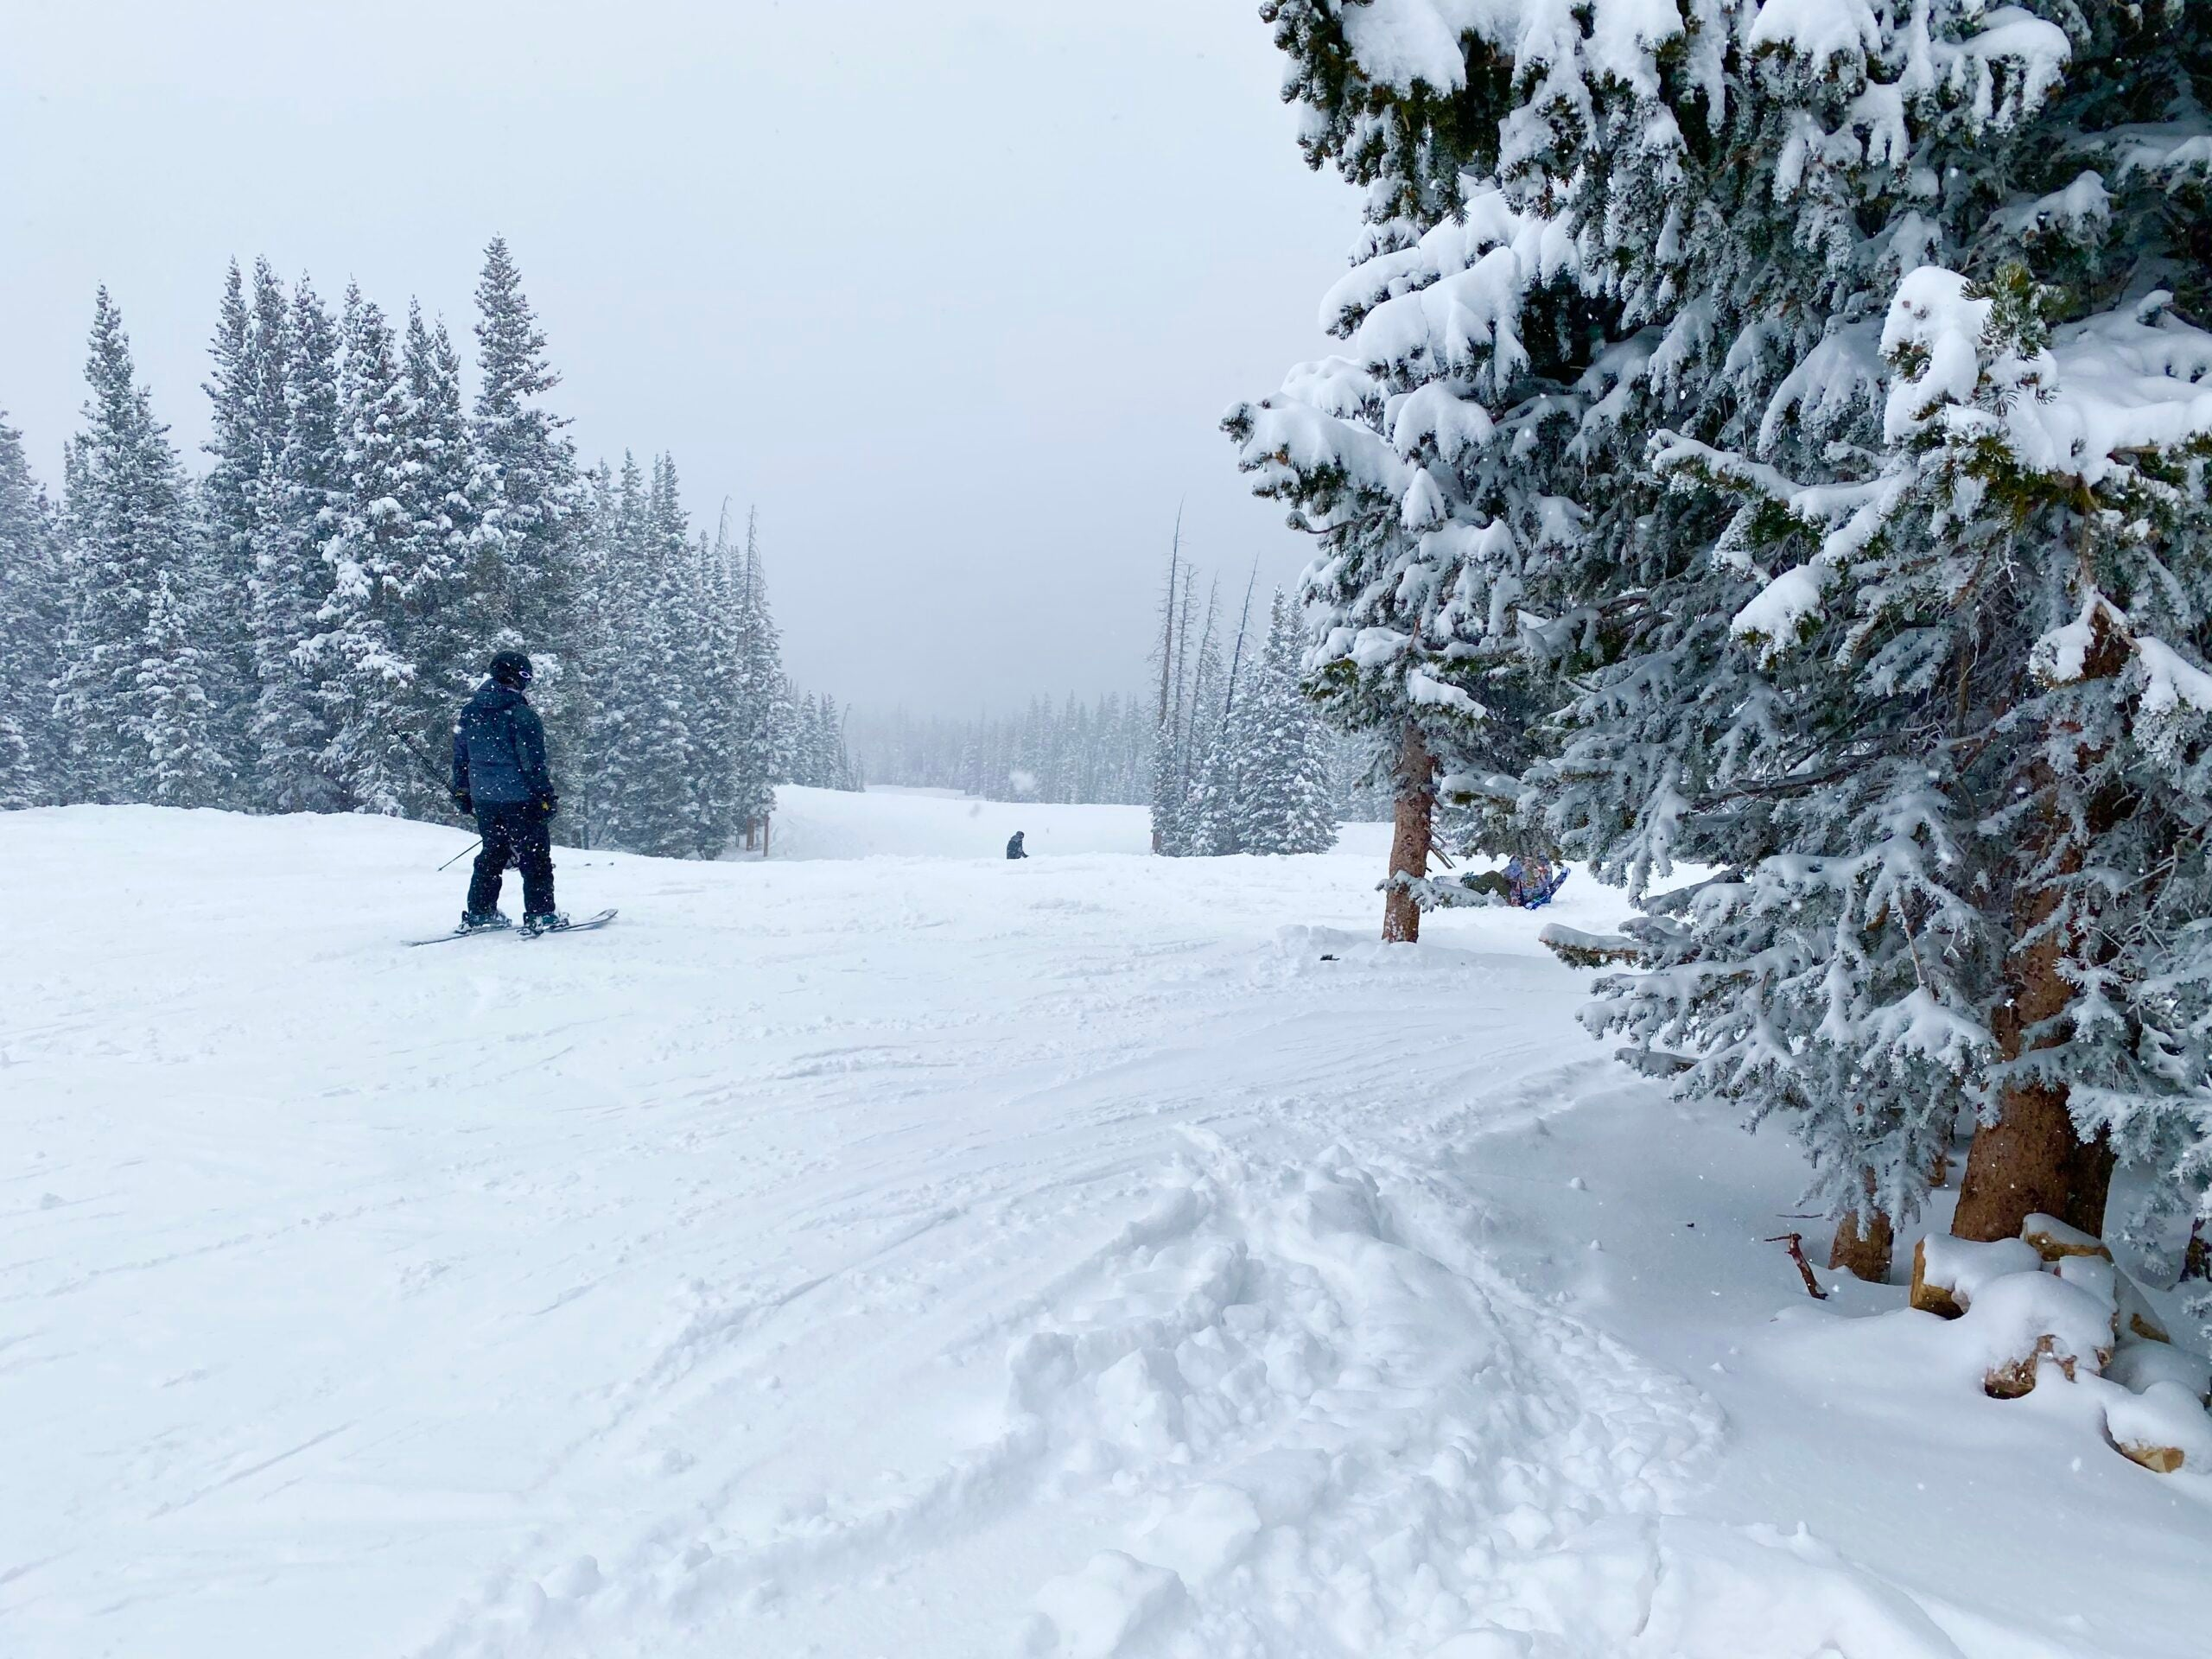 Things to keep in mind when planning your first-ever ski trip